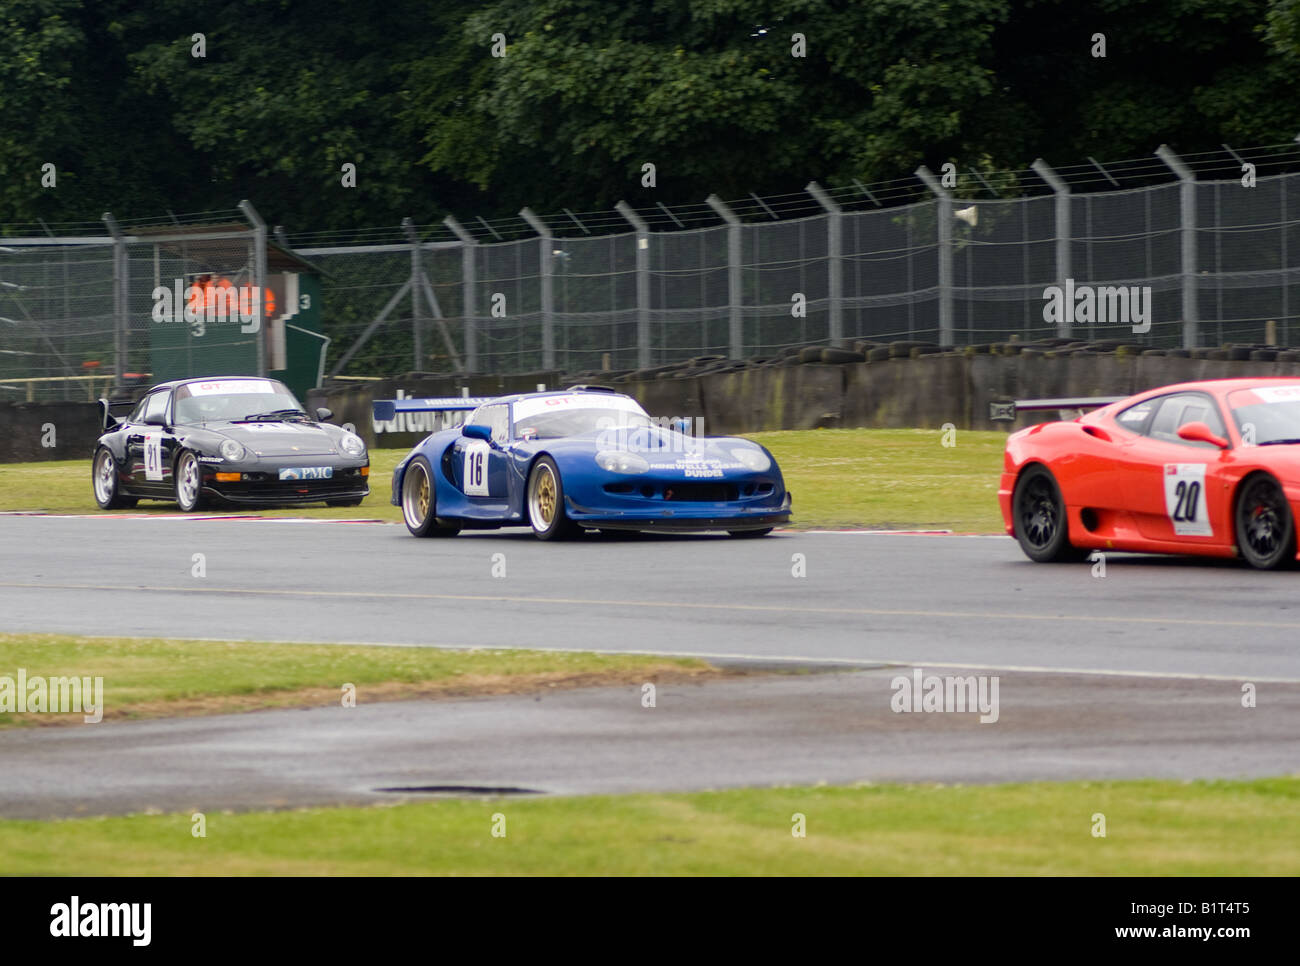 Ferrari 360 Marcos Mantis and Porsche 993 RSR Exiting Old Hall ...